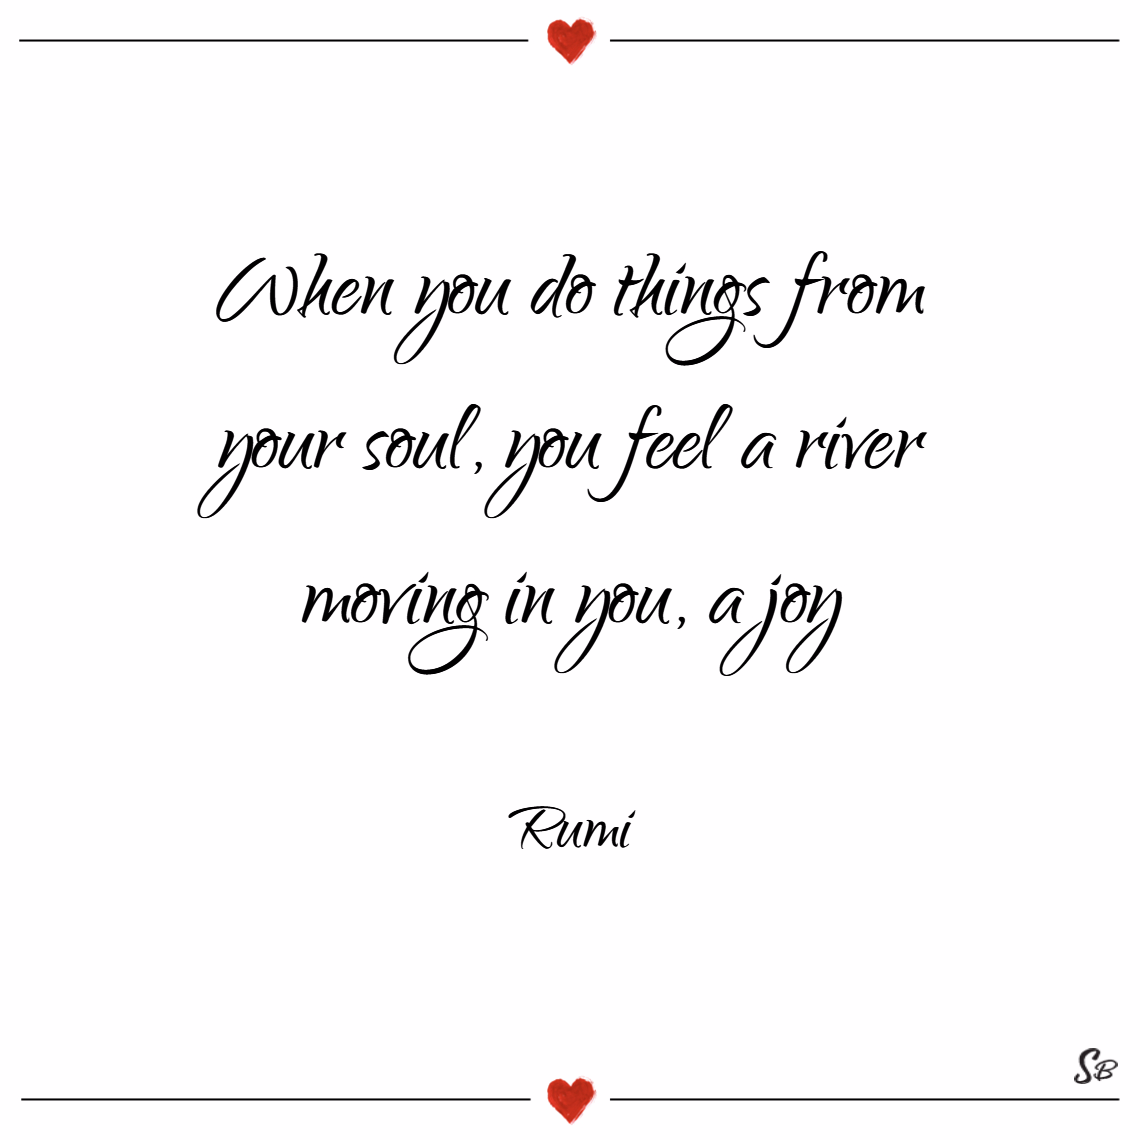 When you do things from your soul, you feel a river moving in you, a joy. – rumi